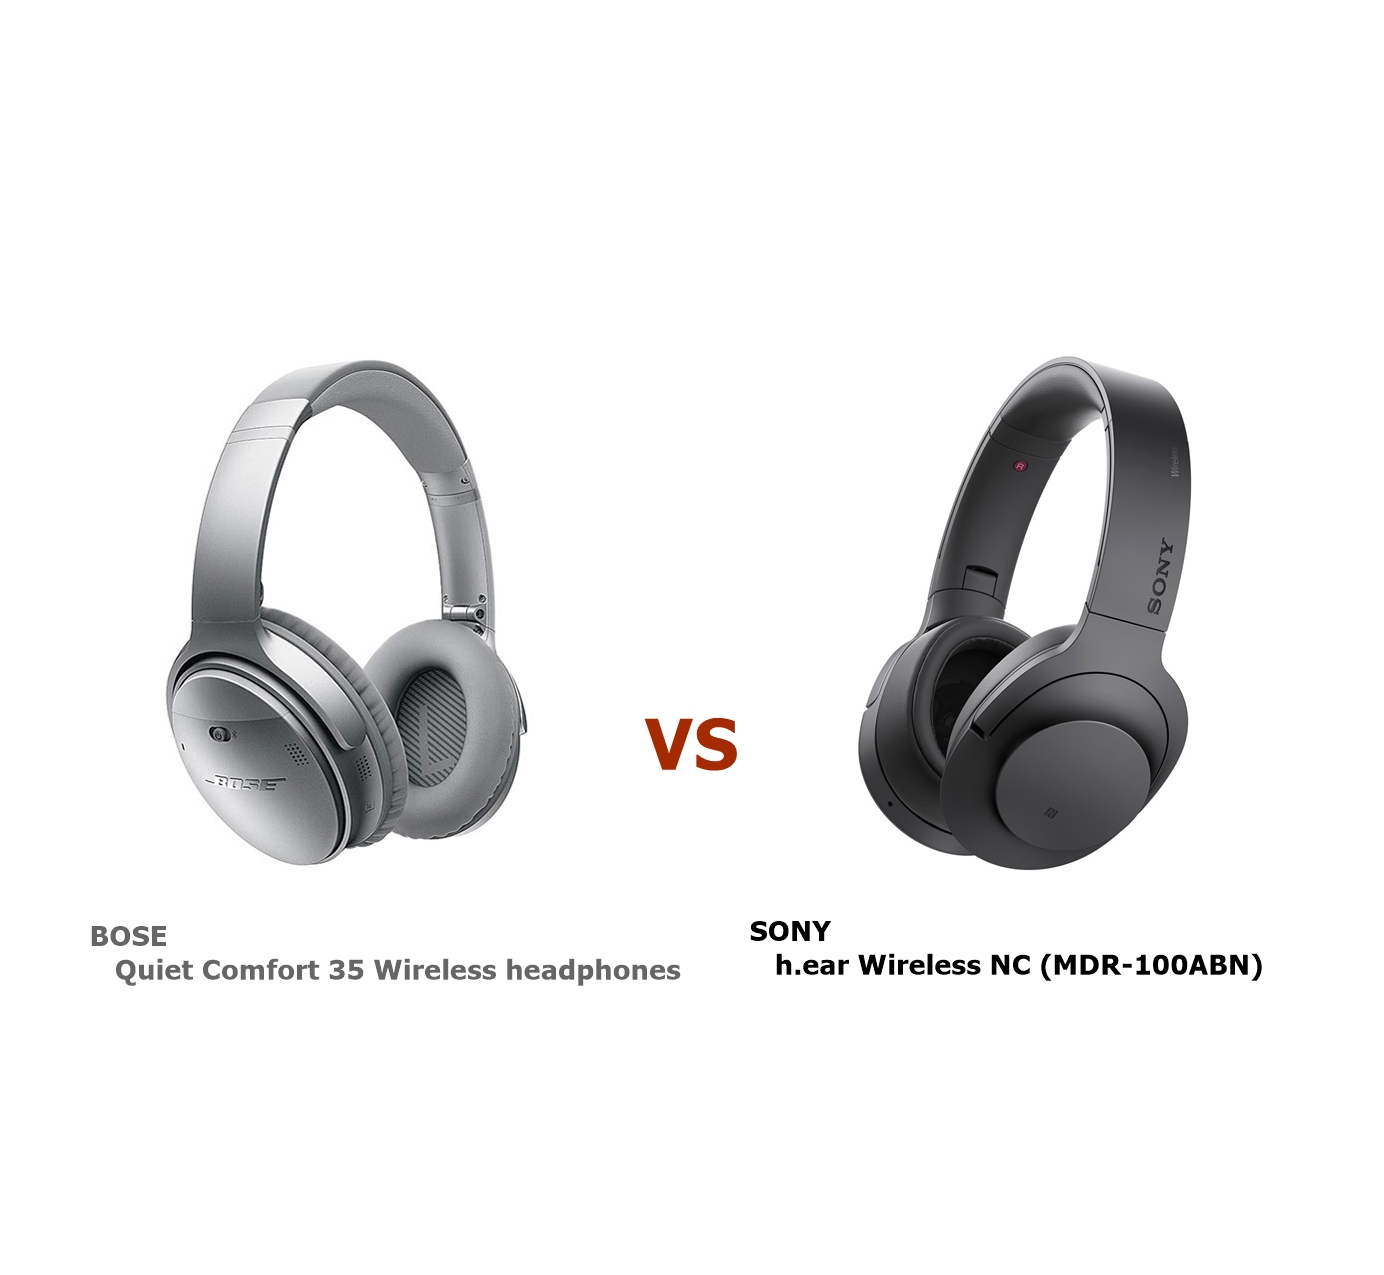 Quiet Comfort 35 Wireless headphones と h.ear on Wireless NC(MDR-100ABN) どっちを買えば良い?